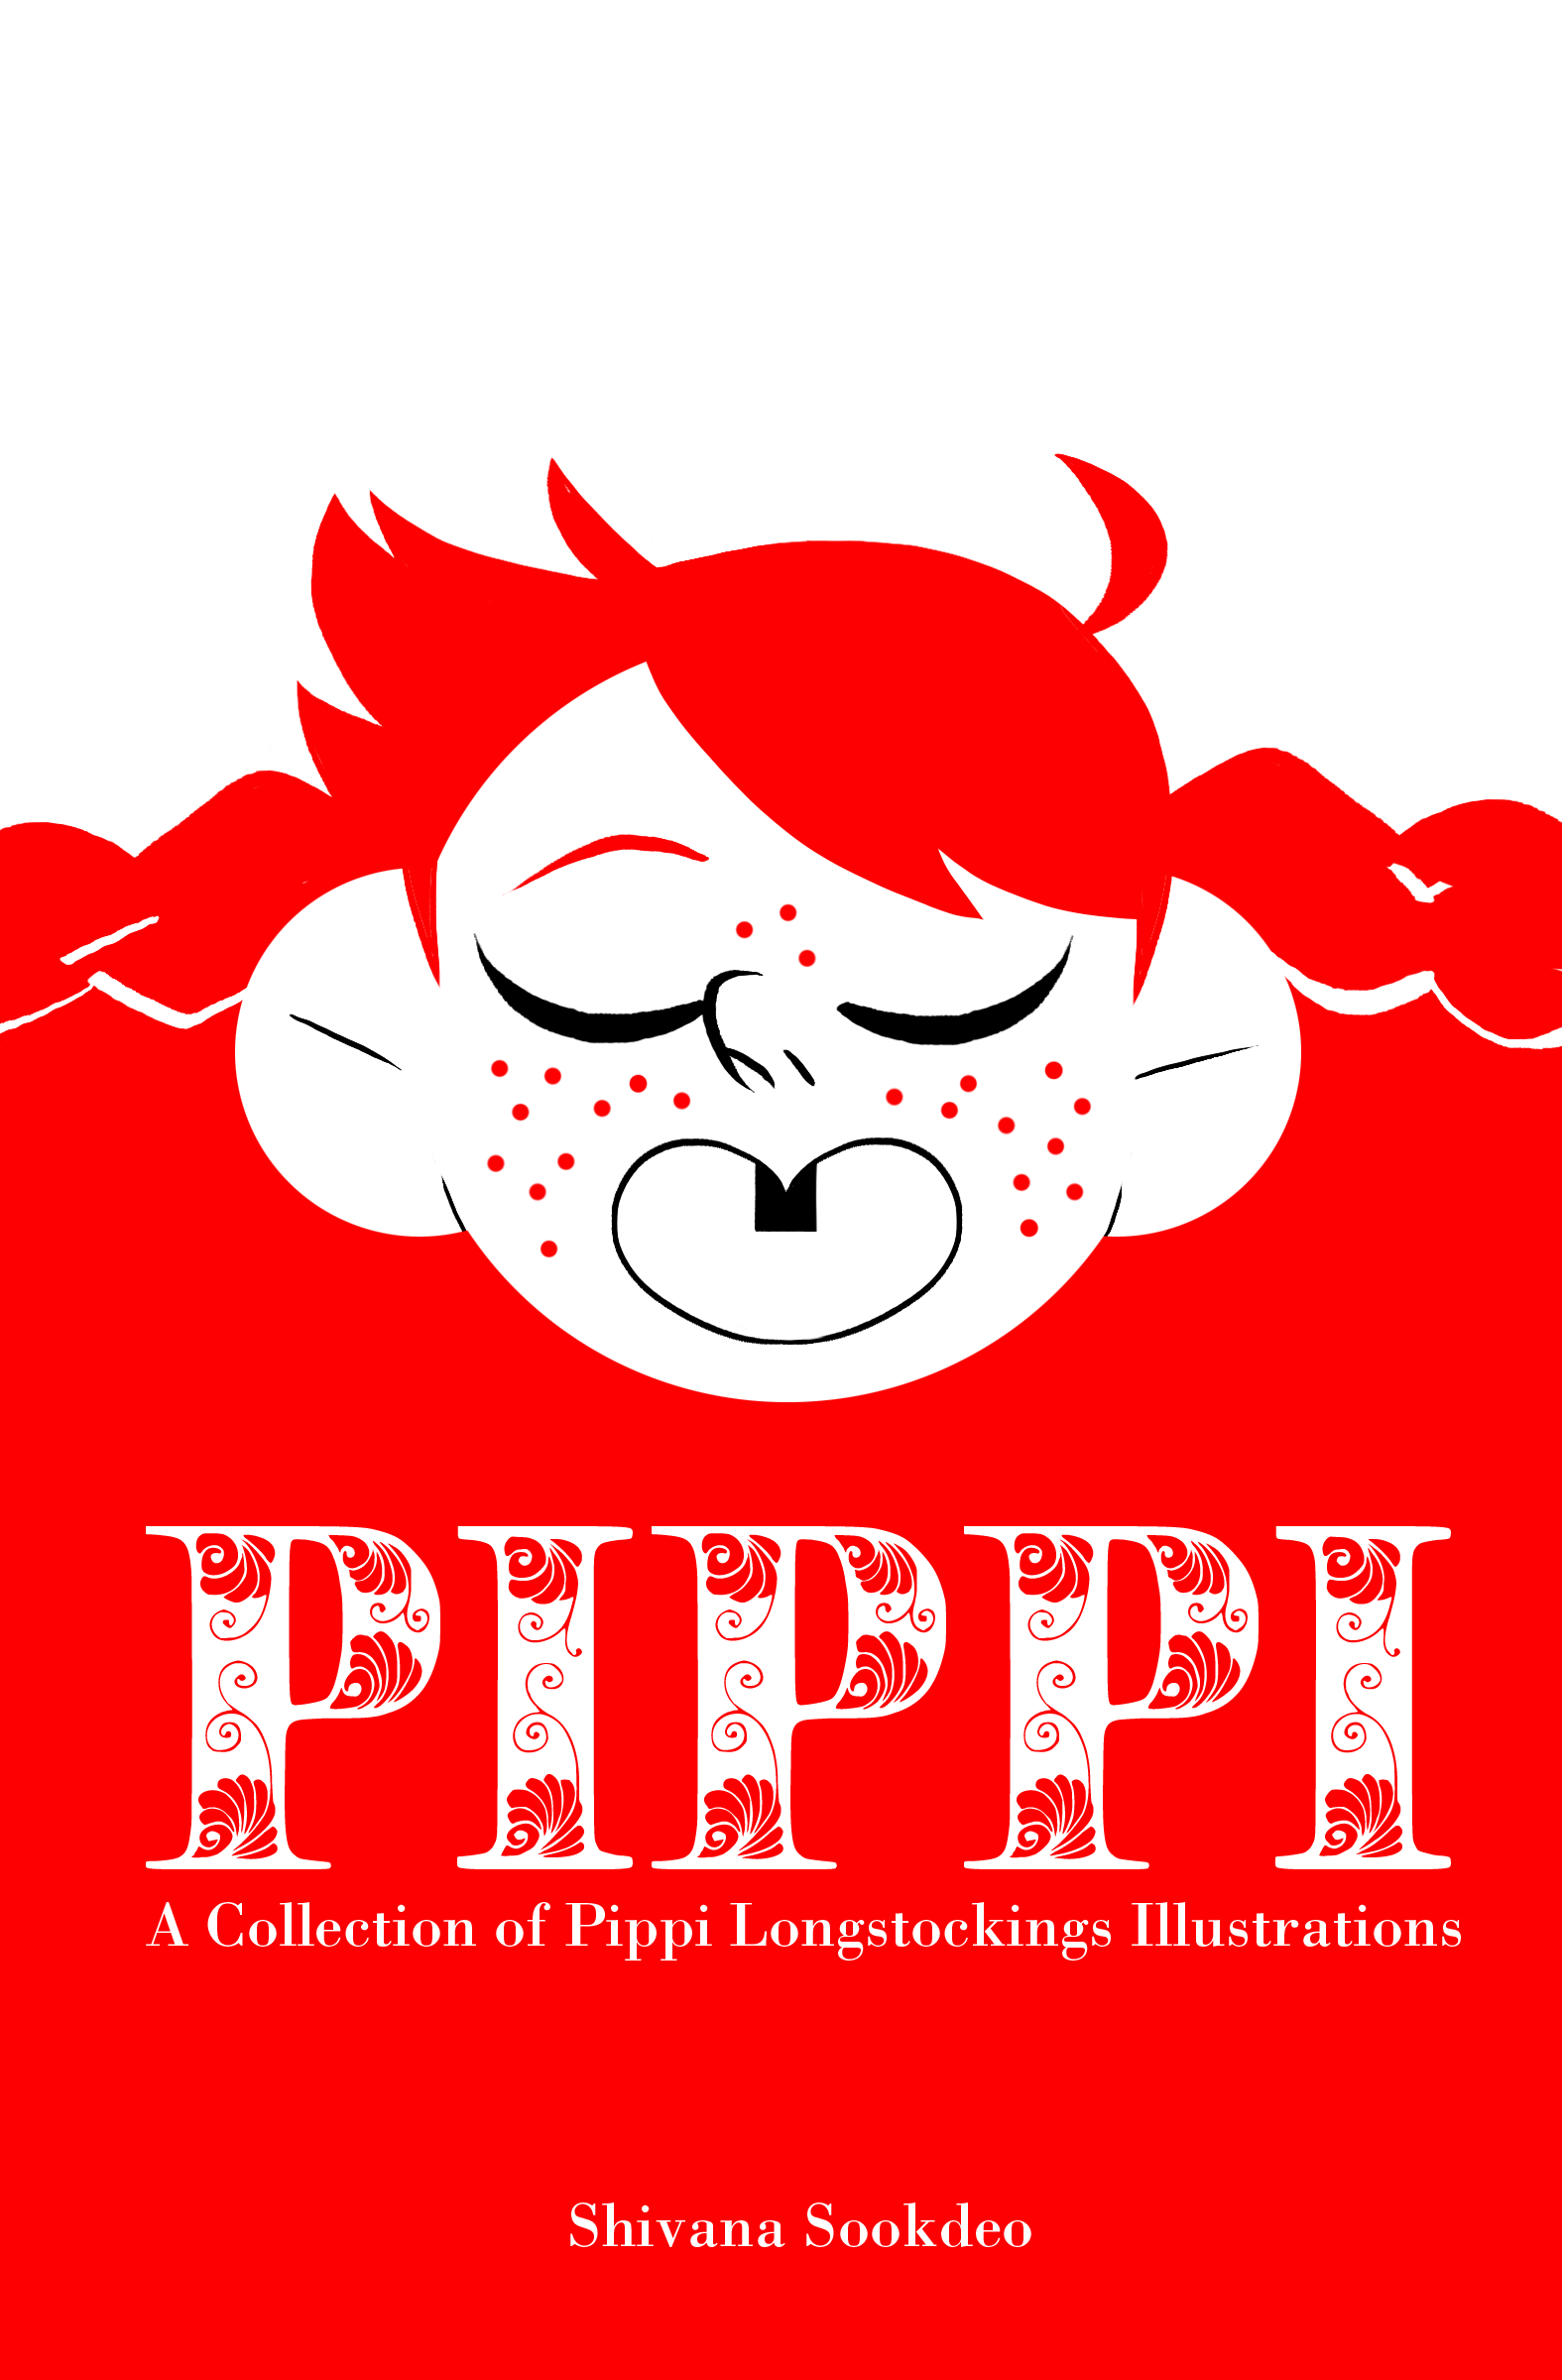 - PIPPI(2017)An assortment of Pippi Longstocking illustrations from Inktober,collected in a zine for TCAF 2017.